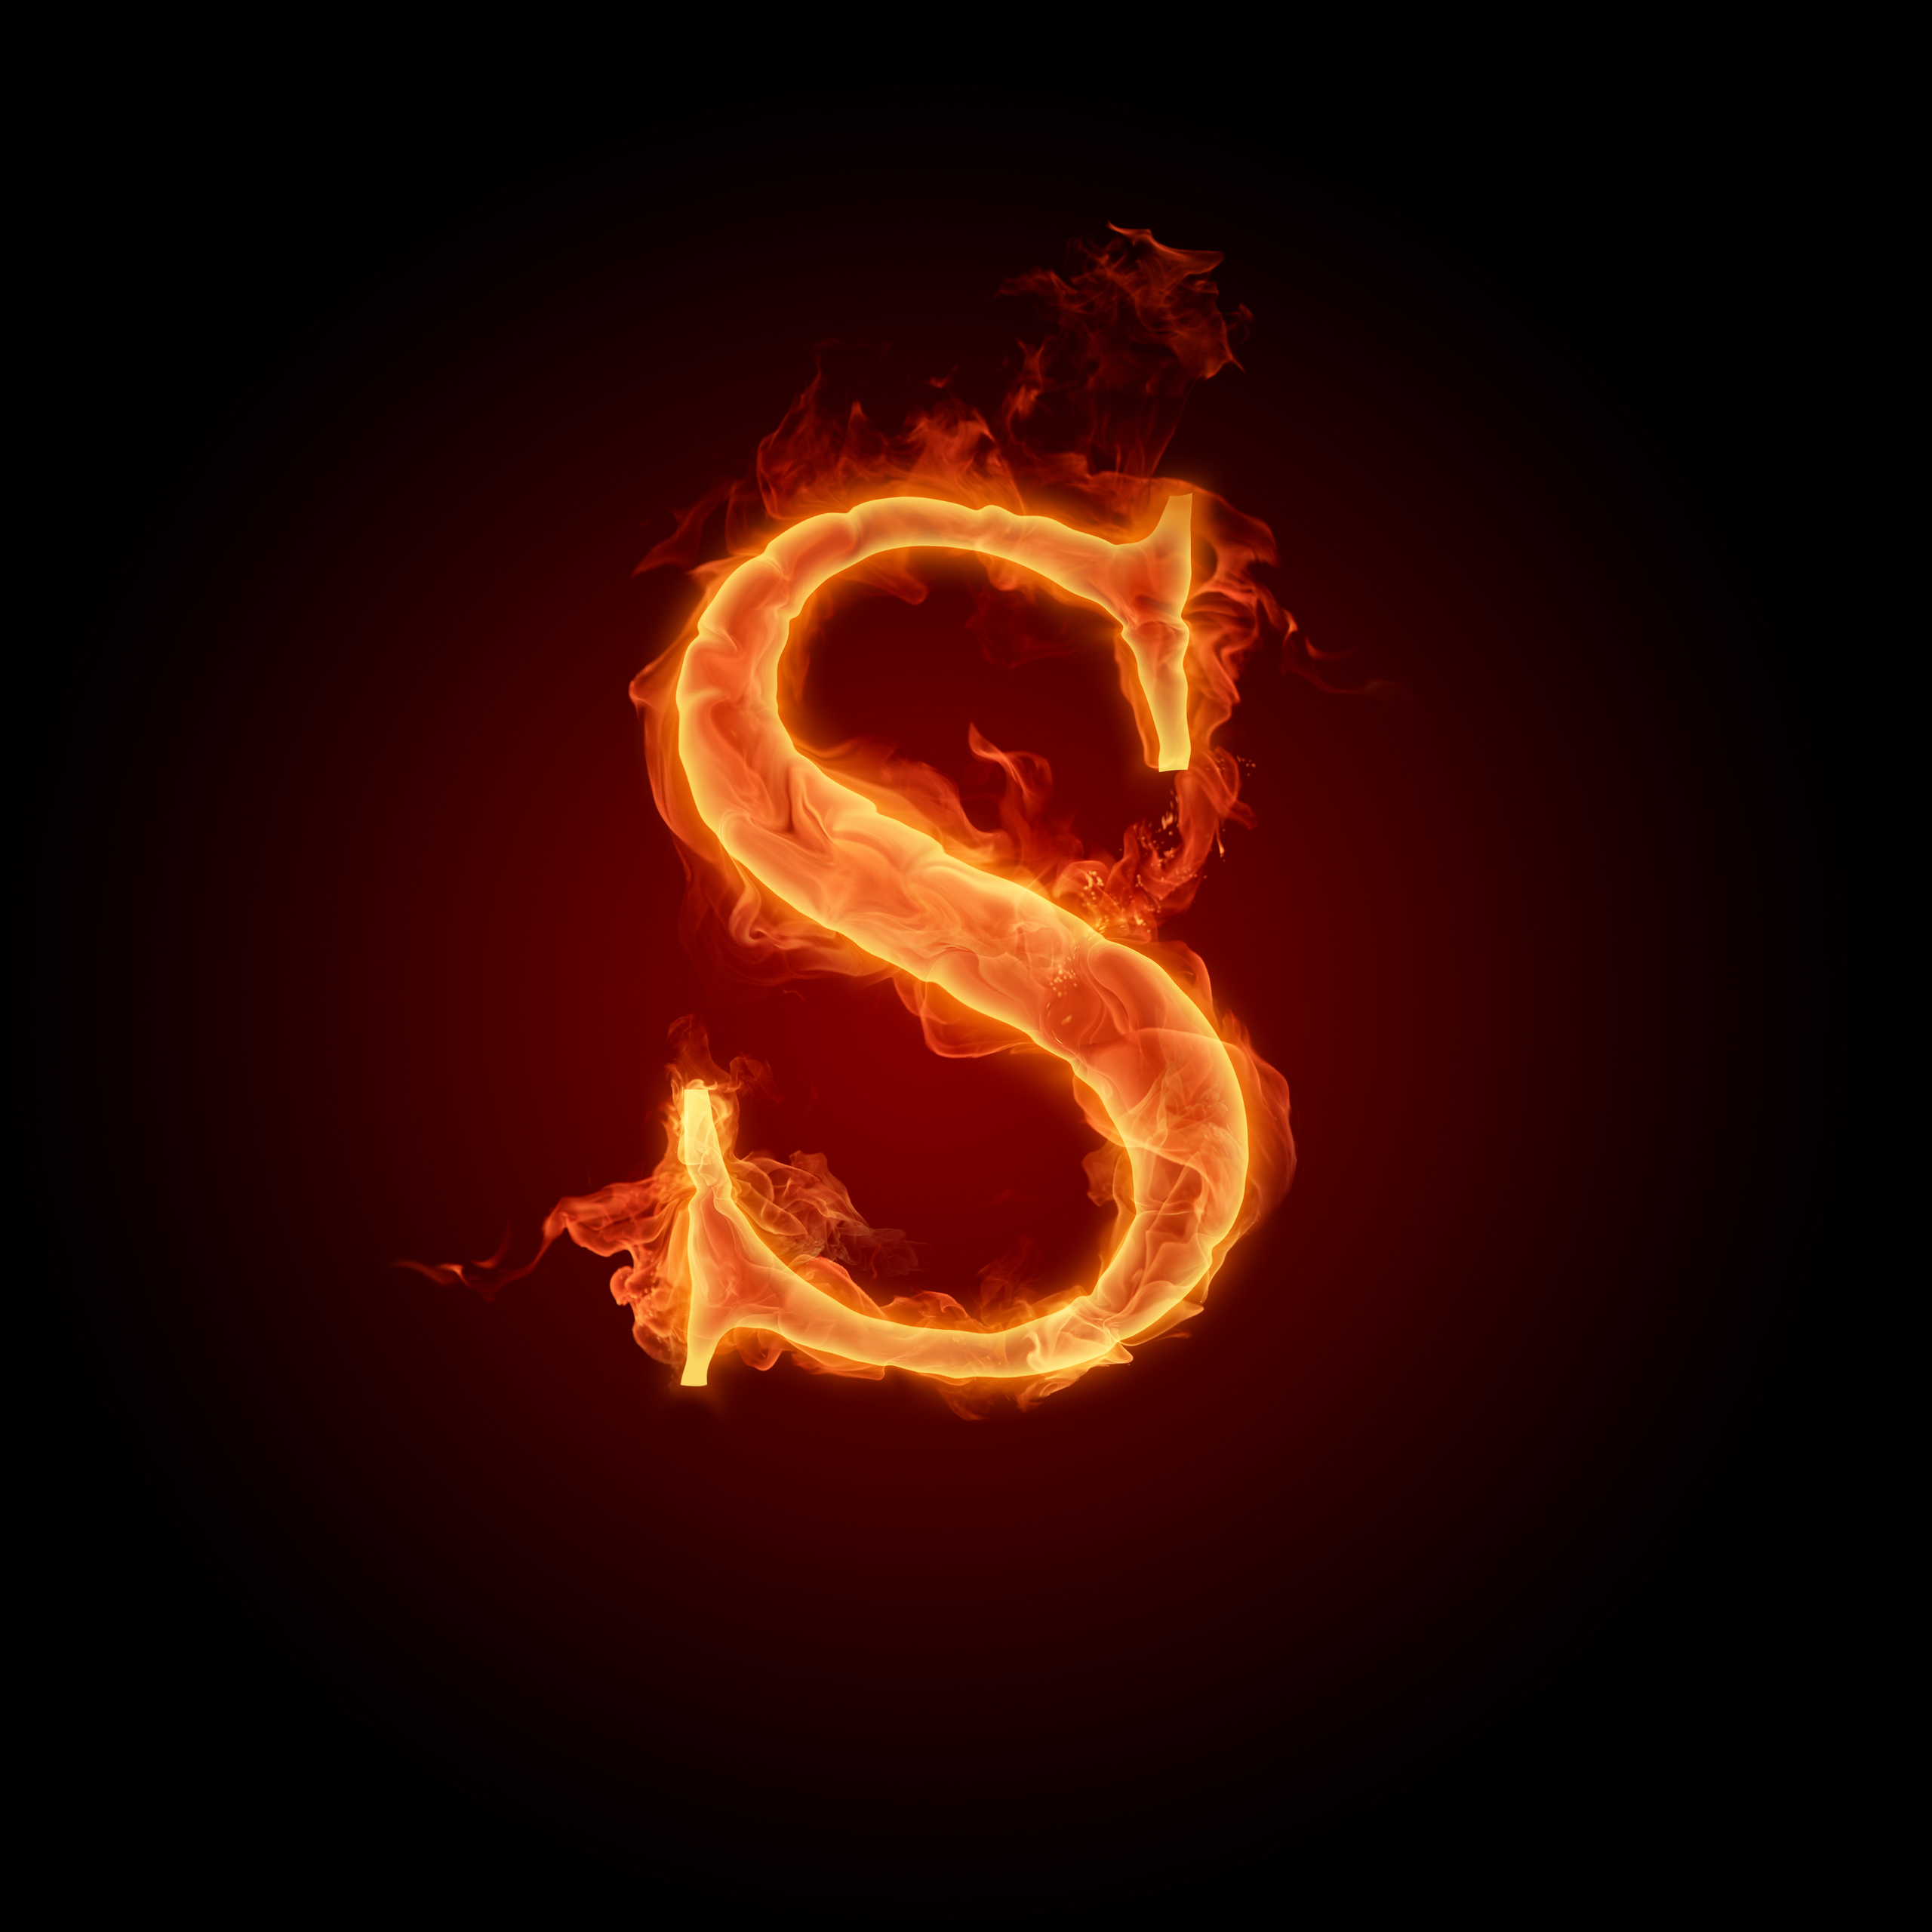 The Letter S Images The Letter S Hd Wallpaper And Background Photos